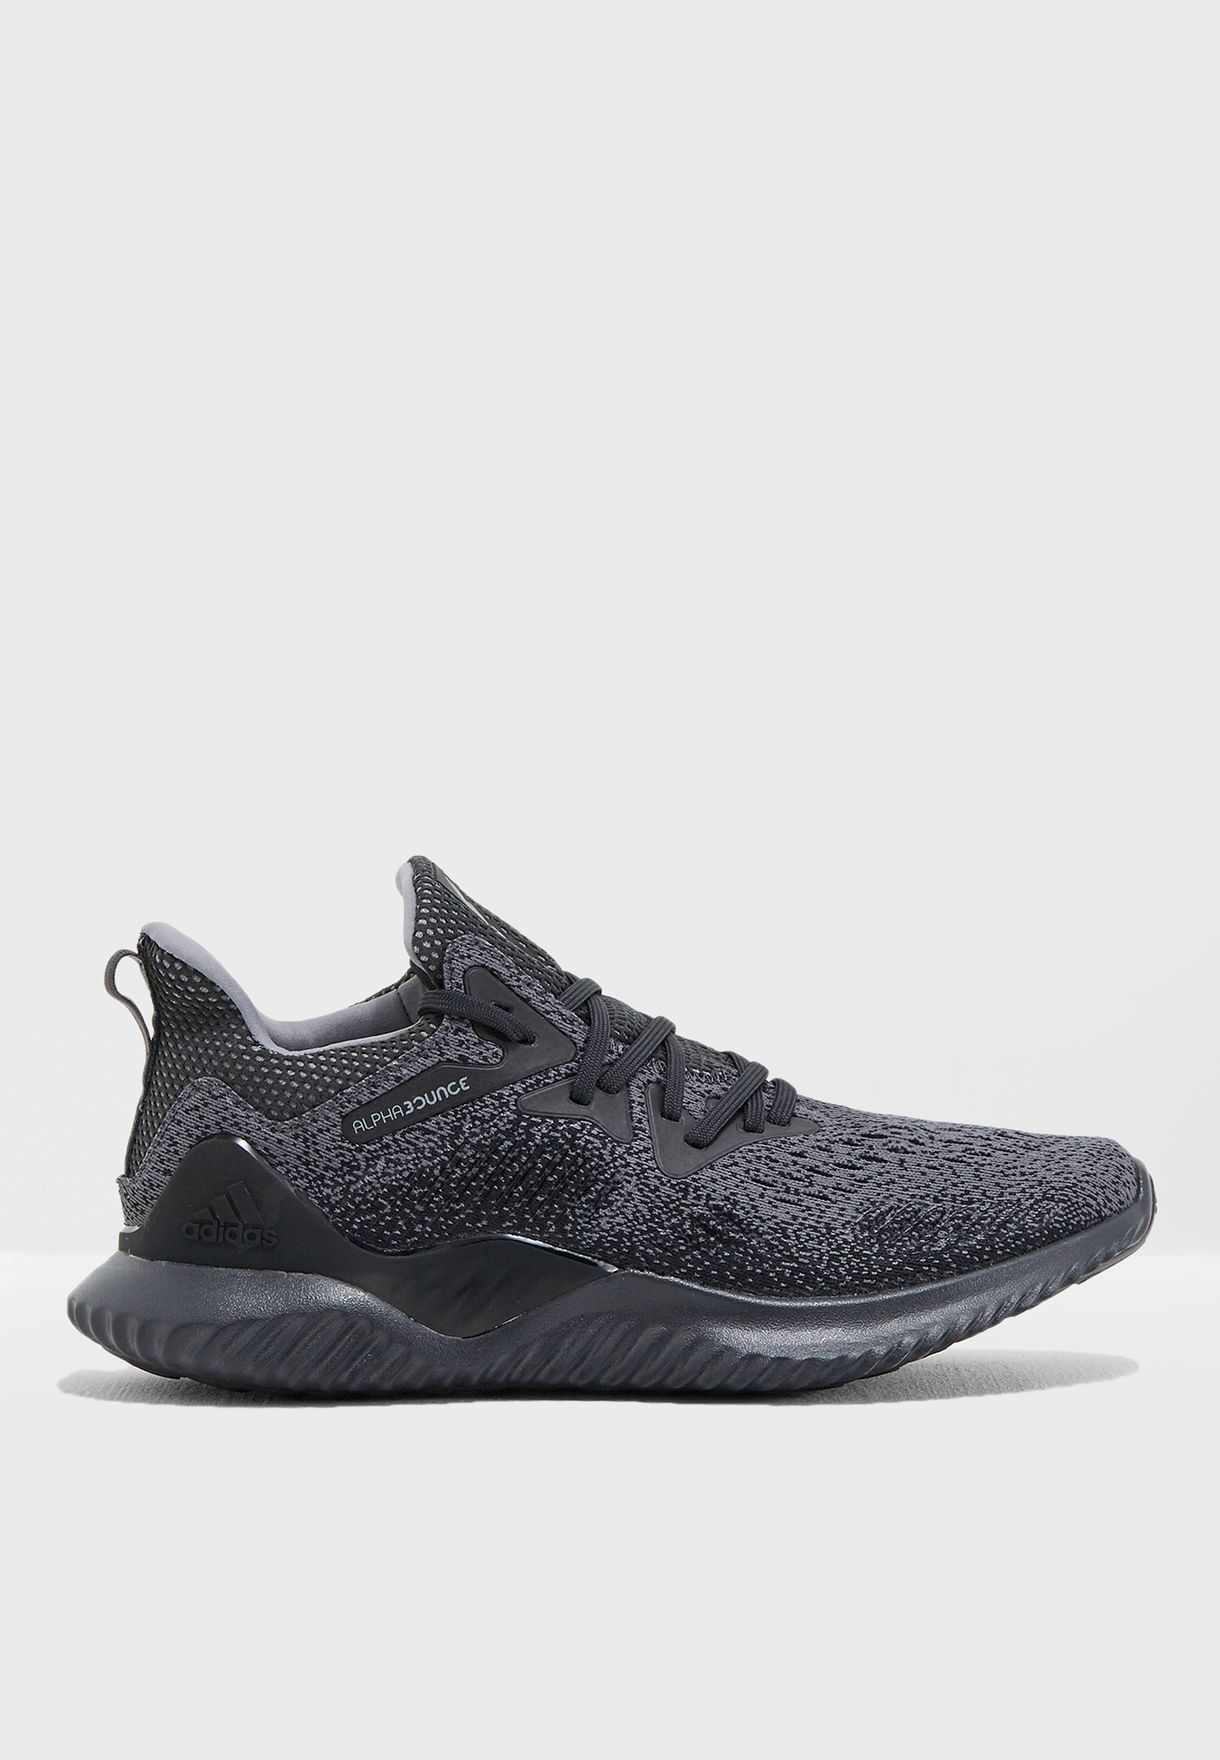 65be0391653b5 Shop adidas black Alphabounce Beyond AQ0573 for Men in Saudi ...